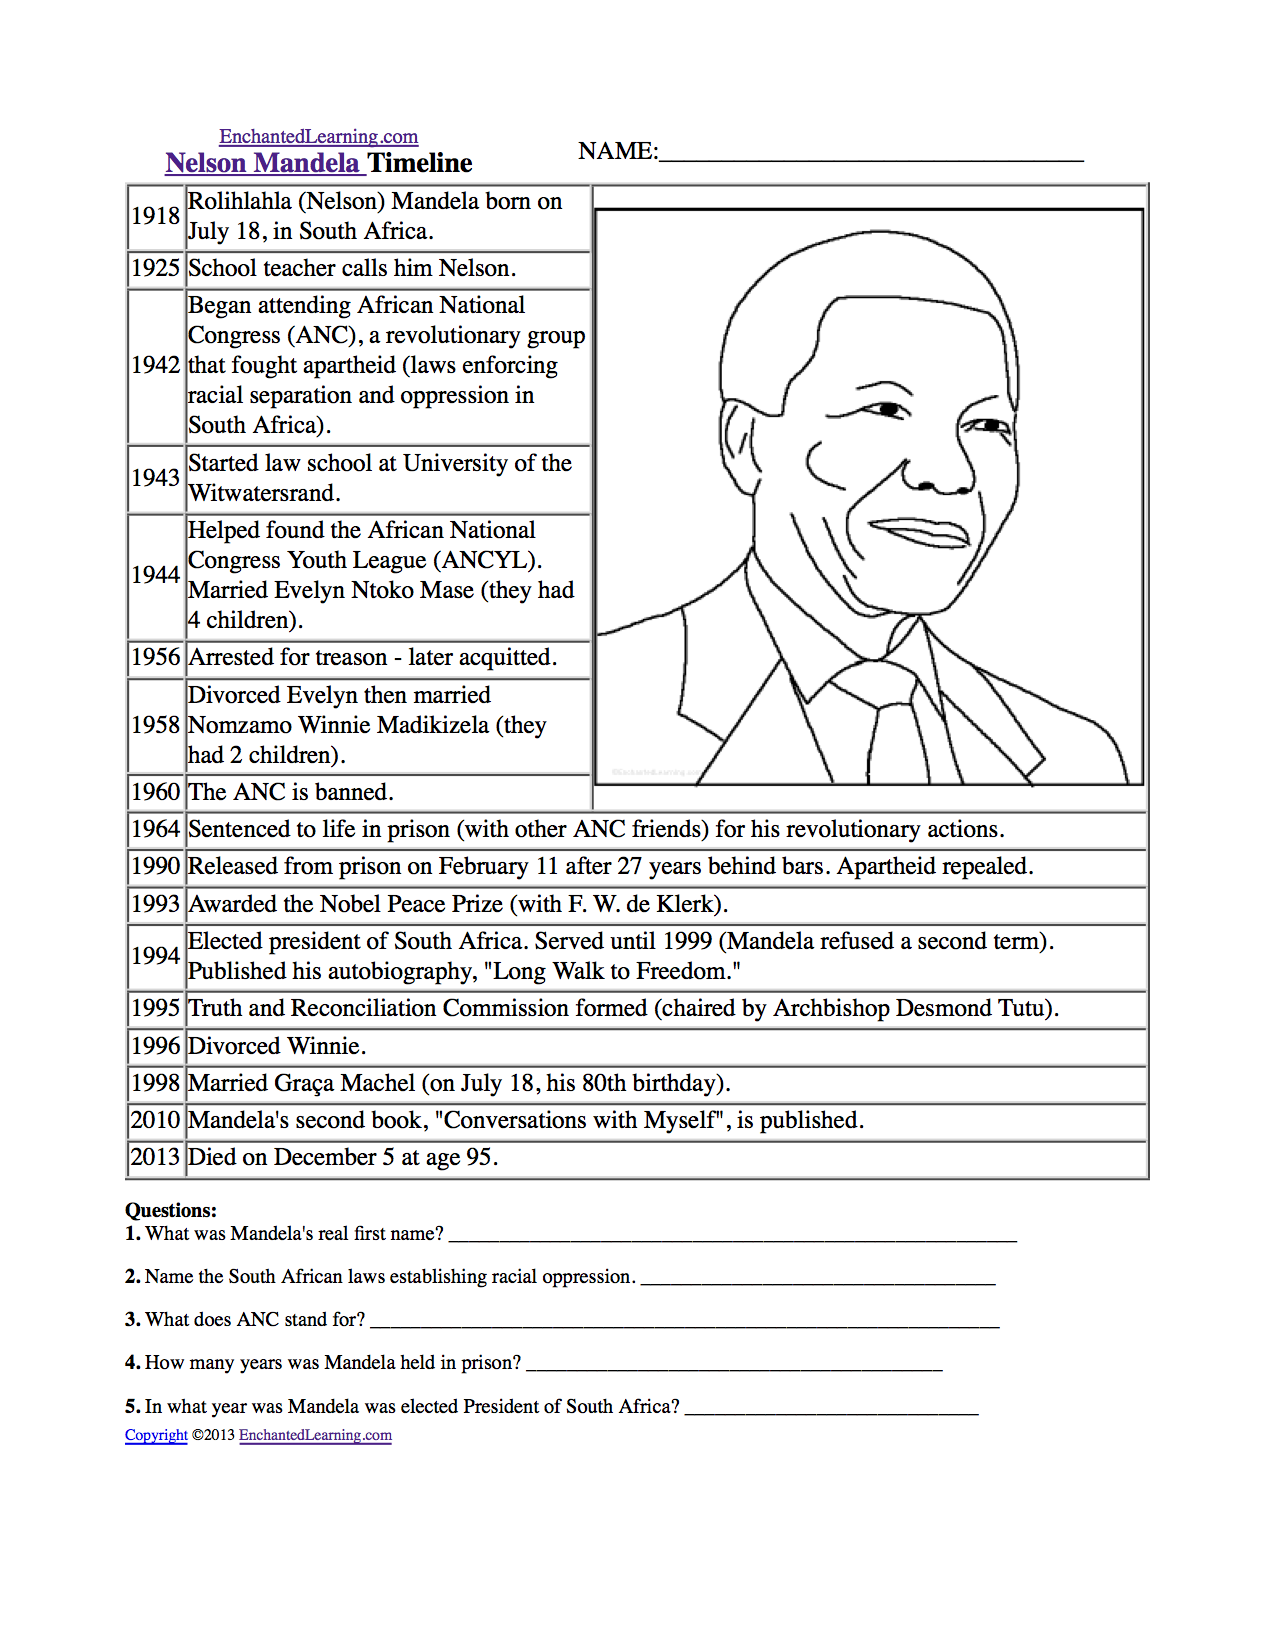 001 Essay Example Nelson Mandela Archaicawful Questions Research Paper Topics Full